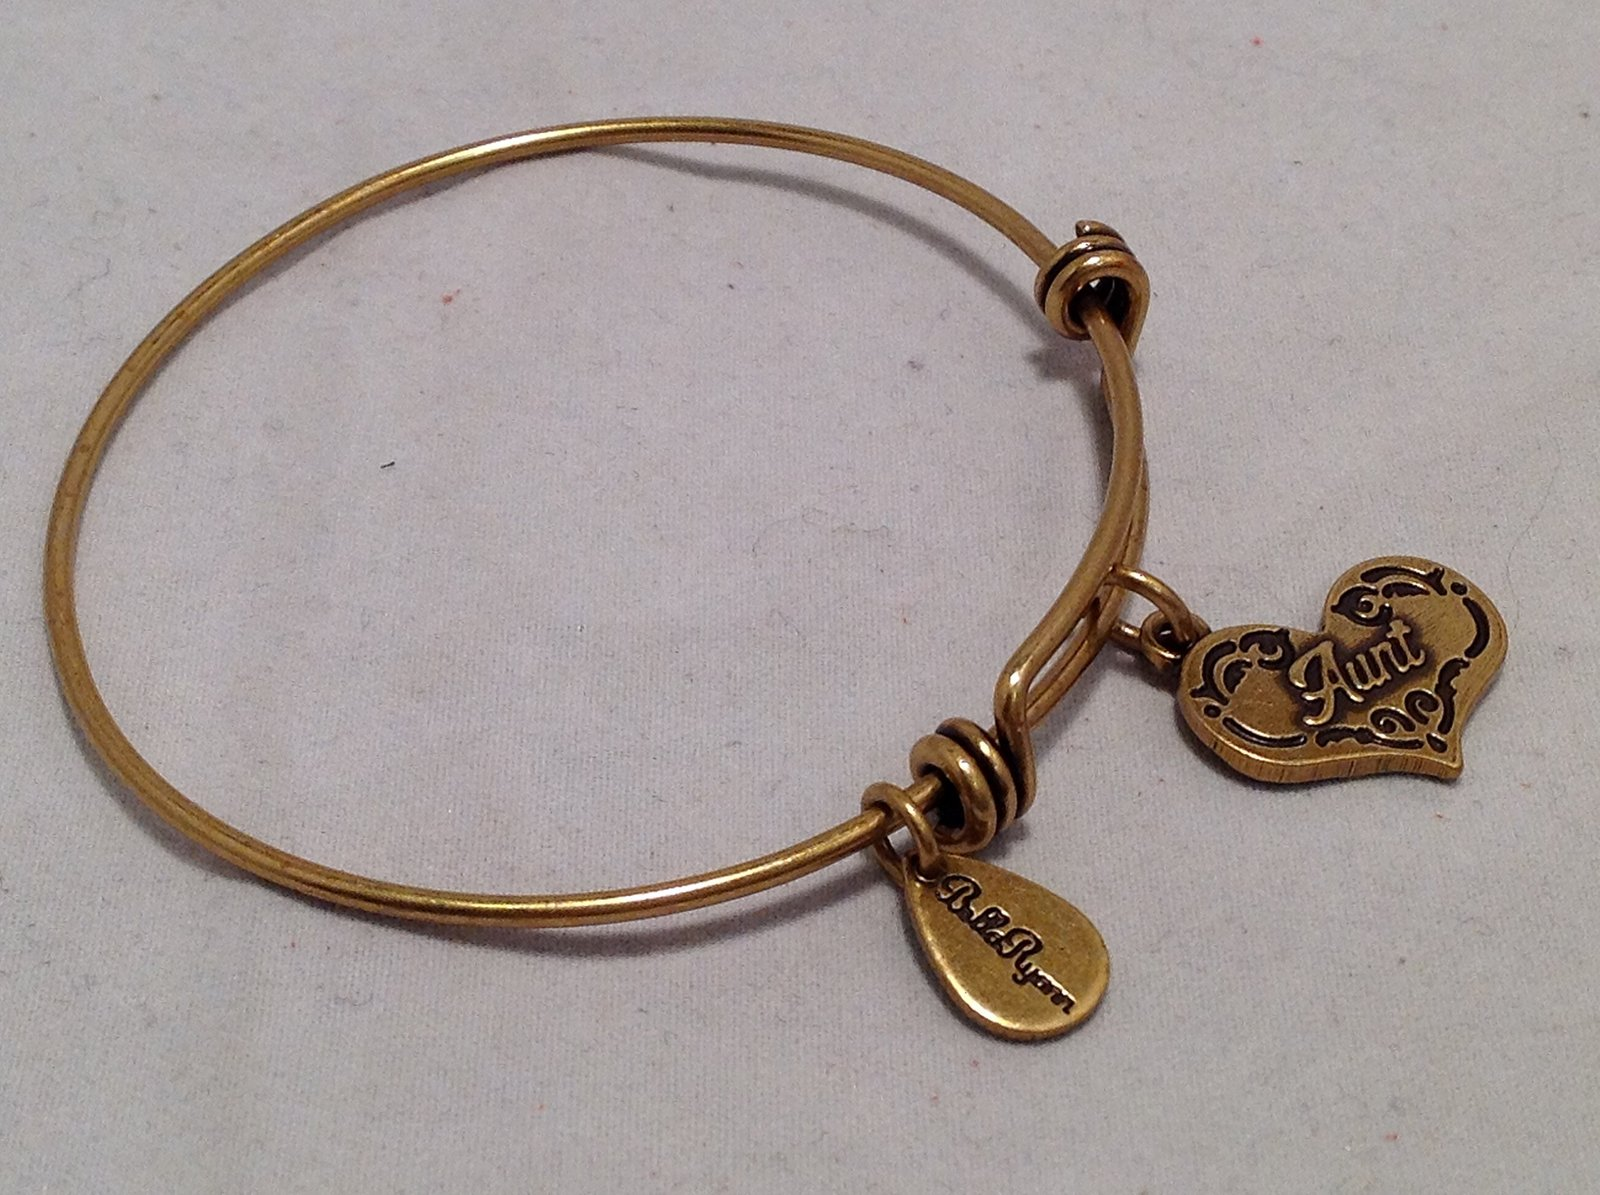 Bella Ryann Gold Aunt Charm Bangle Bracelet